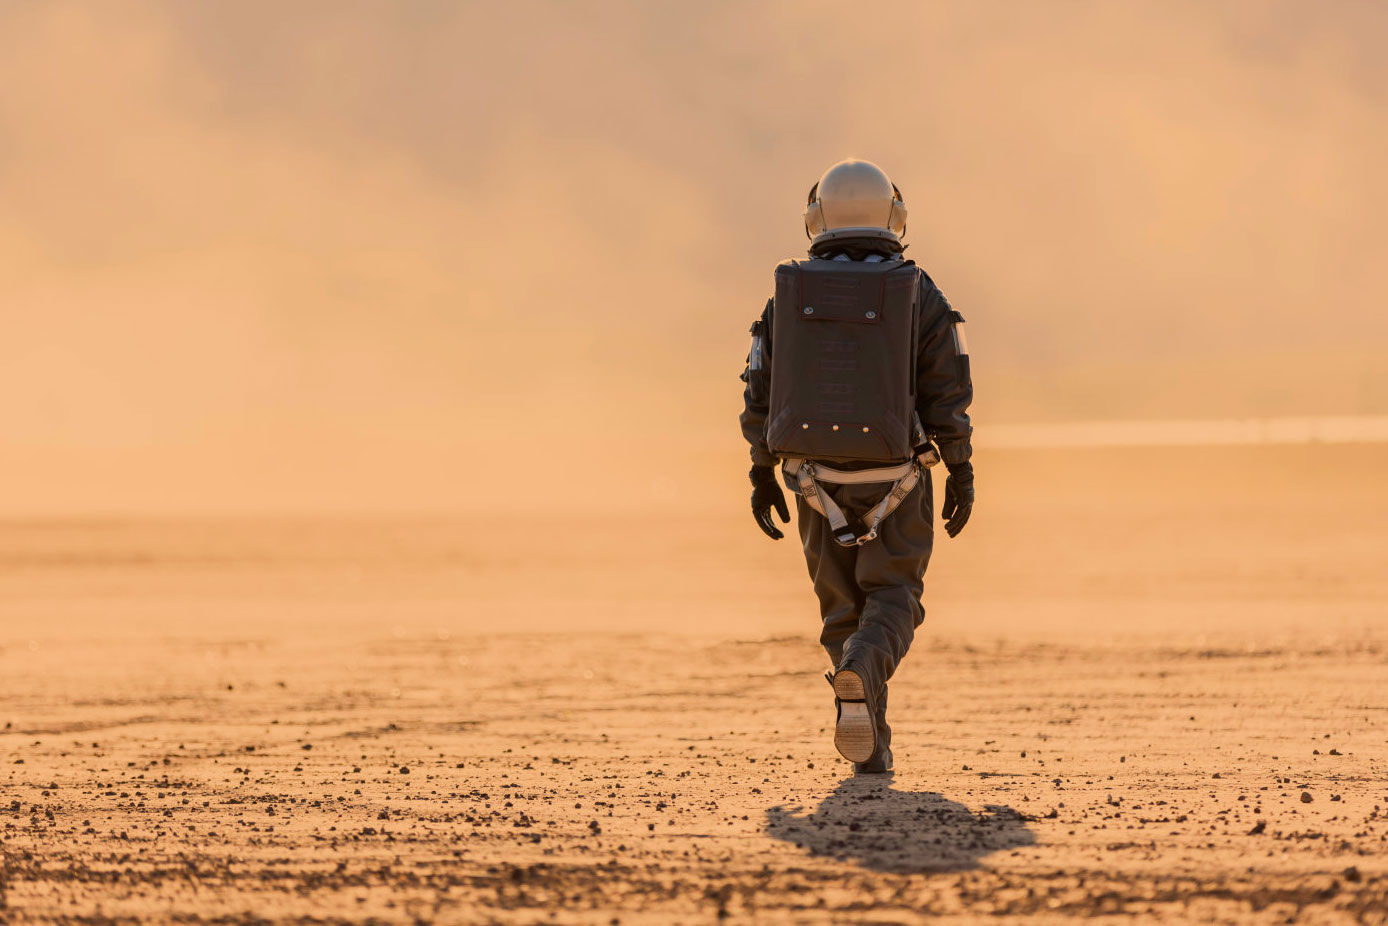 Space project Mars One declared bankrupt